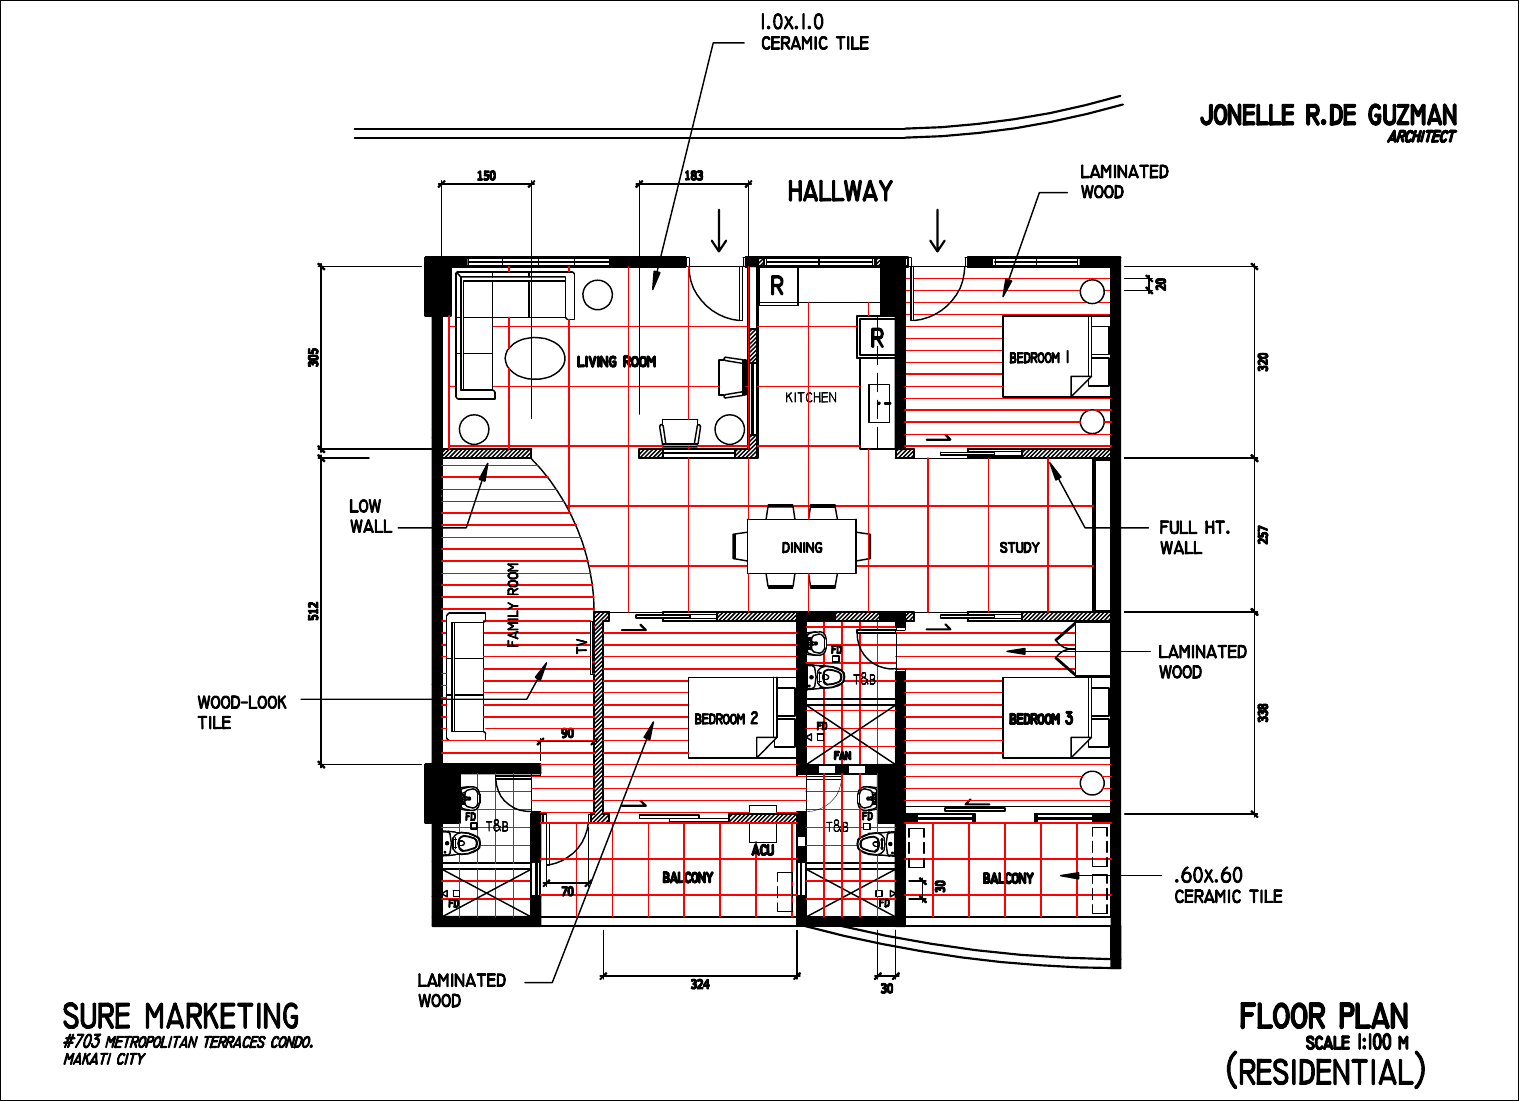 Floor Plan Residential With Tile Layout 2 Pdf